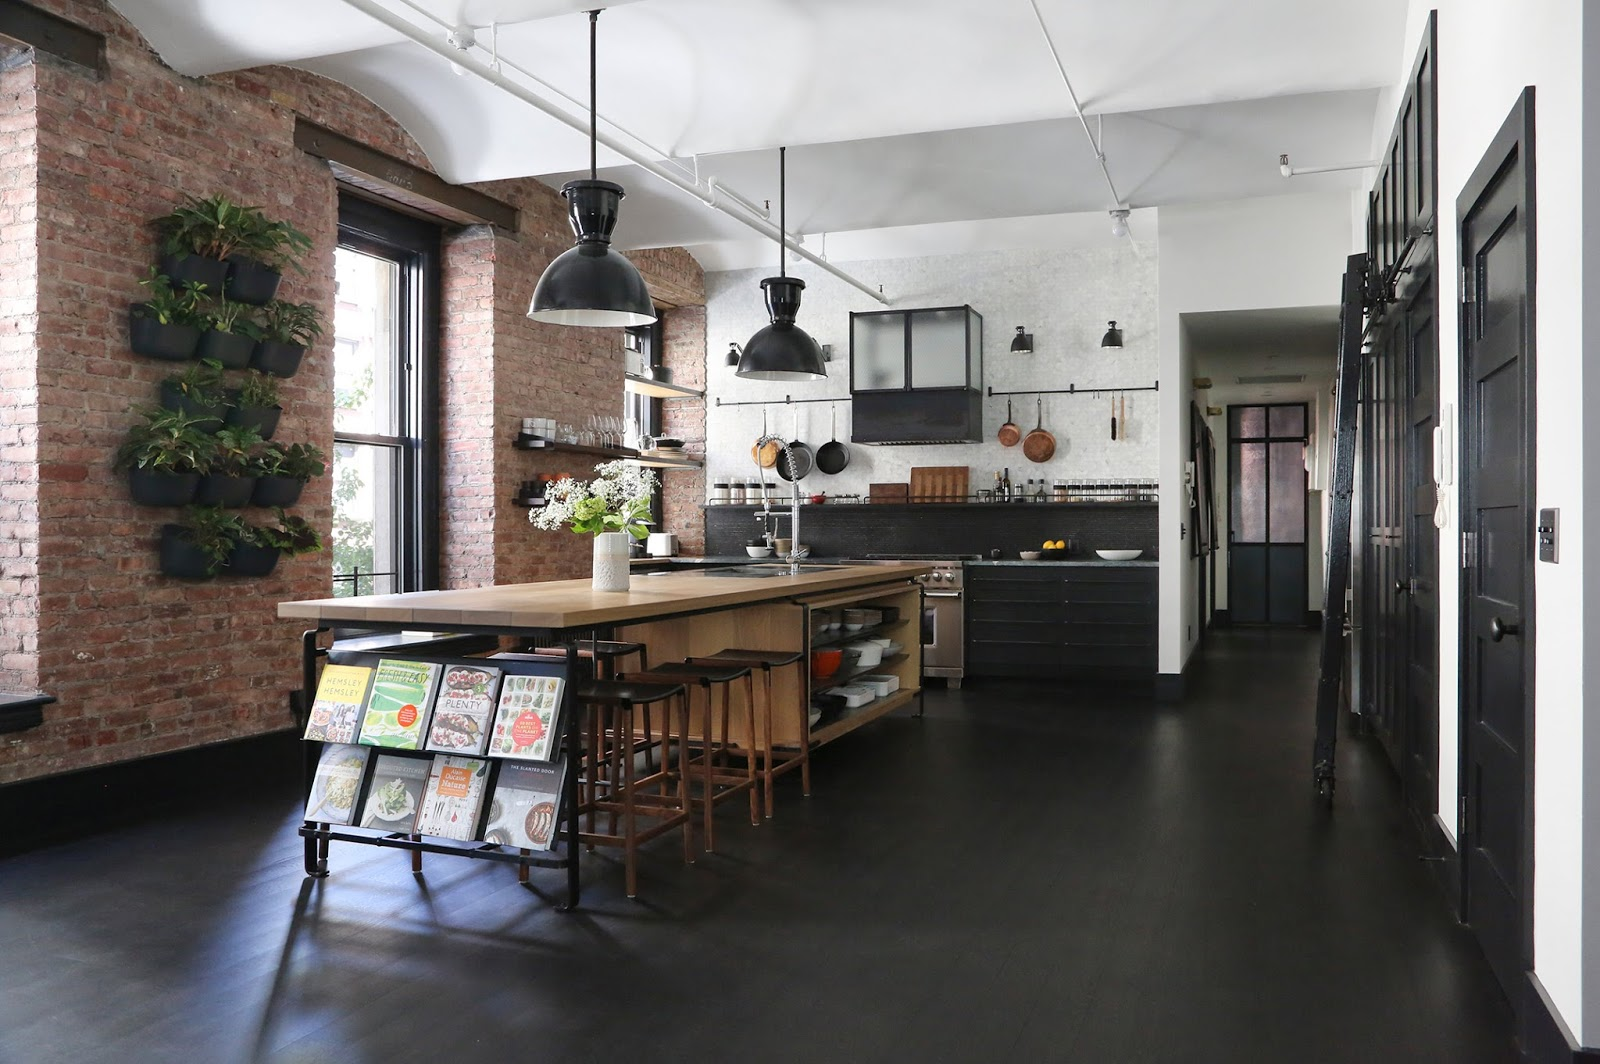 Loft industriale e moderno a new york by union studio for Design moderno casa industriale